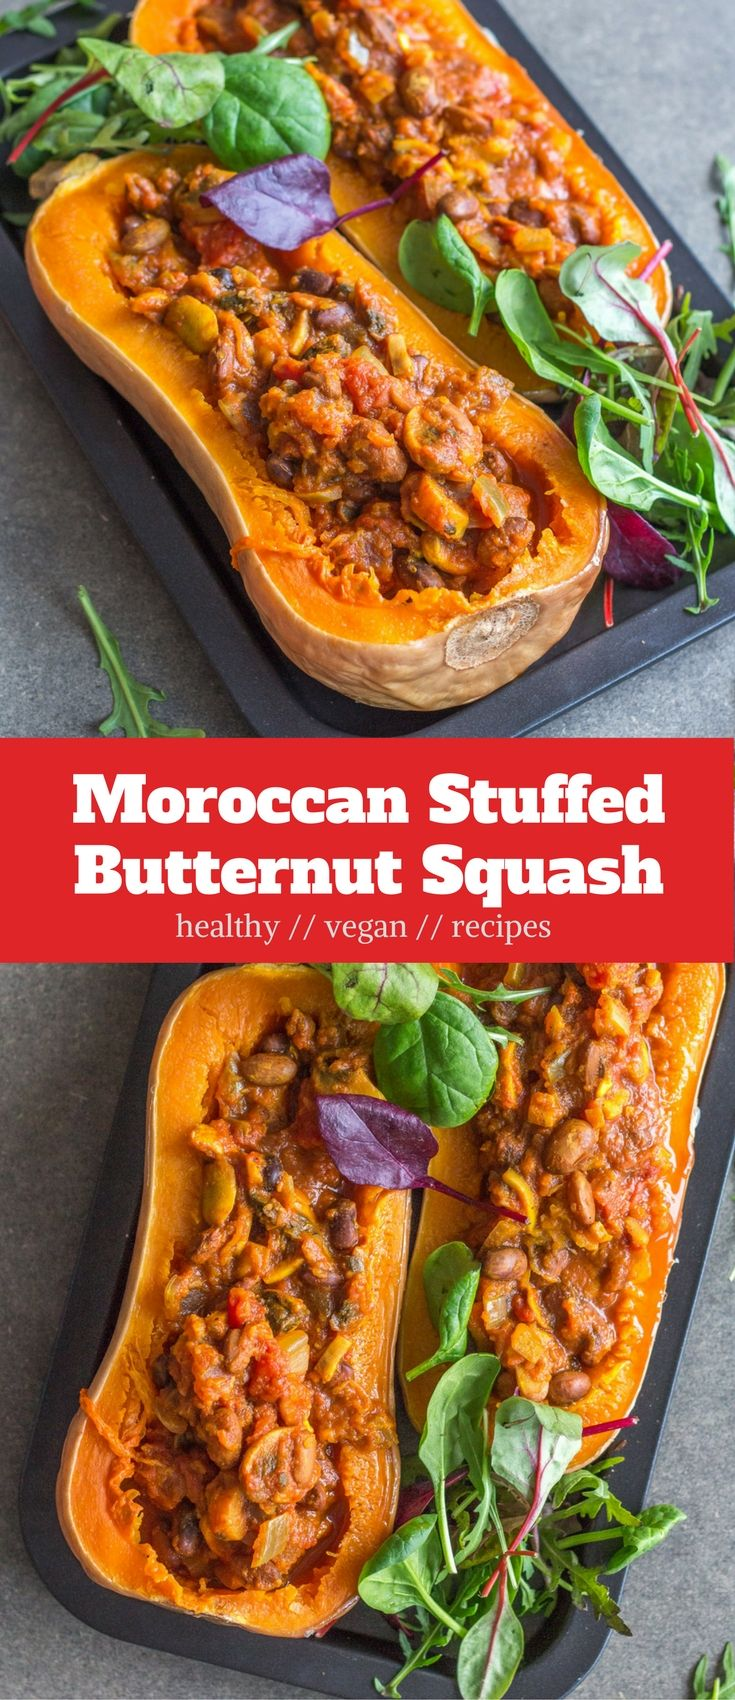 Moroccan Stuffed Butternut Squash, which is full of flavour and protein, satisfying, and healthy. A delicious vegan dinner idea. #vegan #dinner #plantbased #recipes #healthy #moroccan